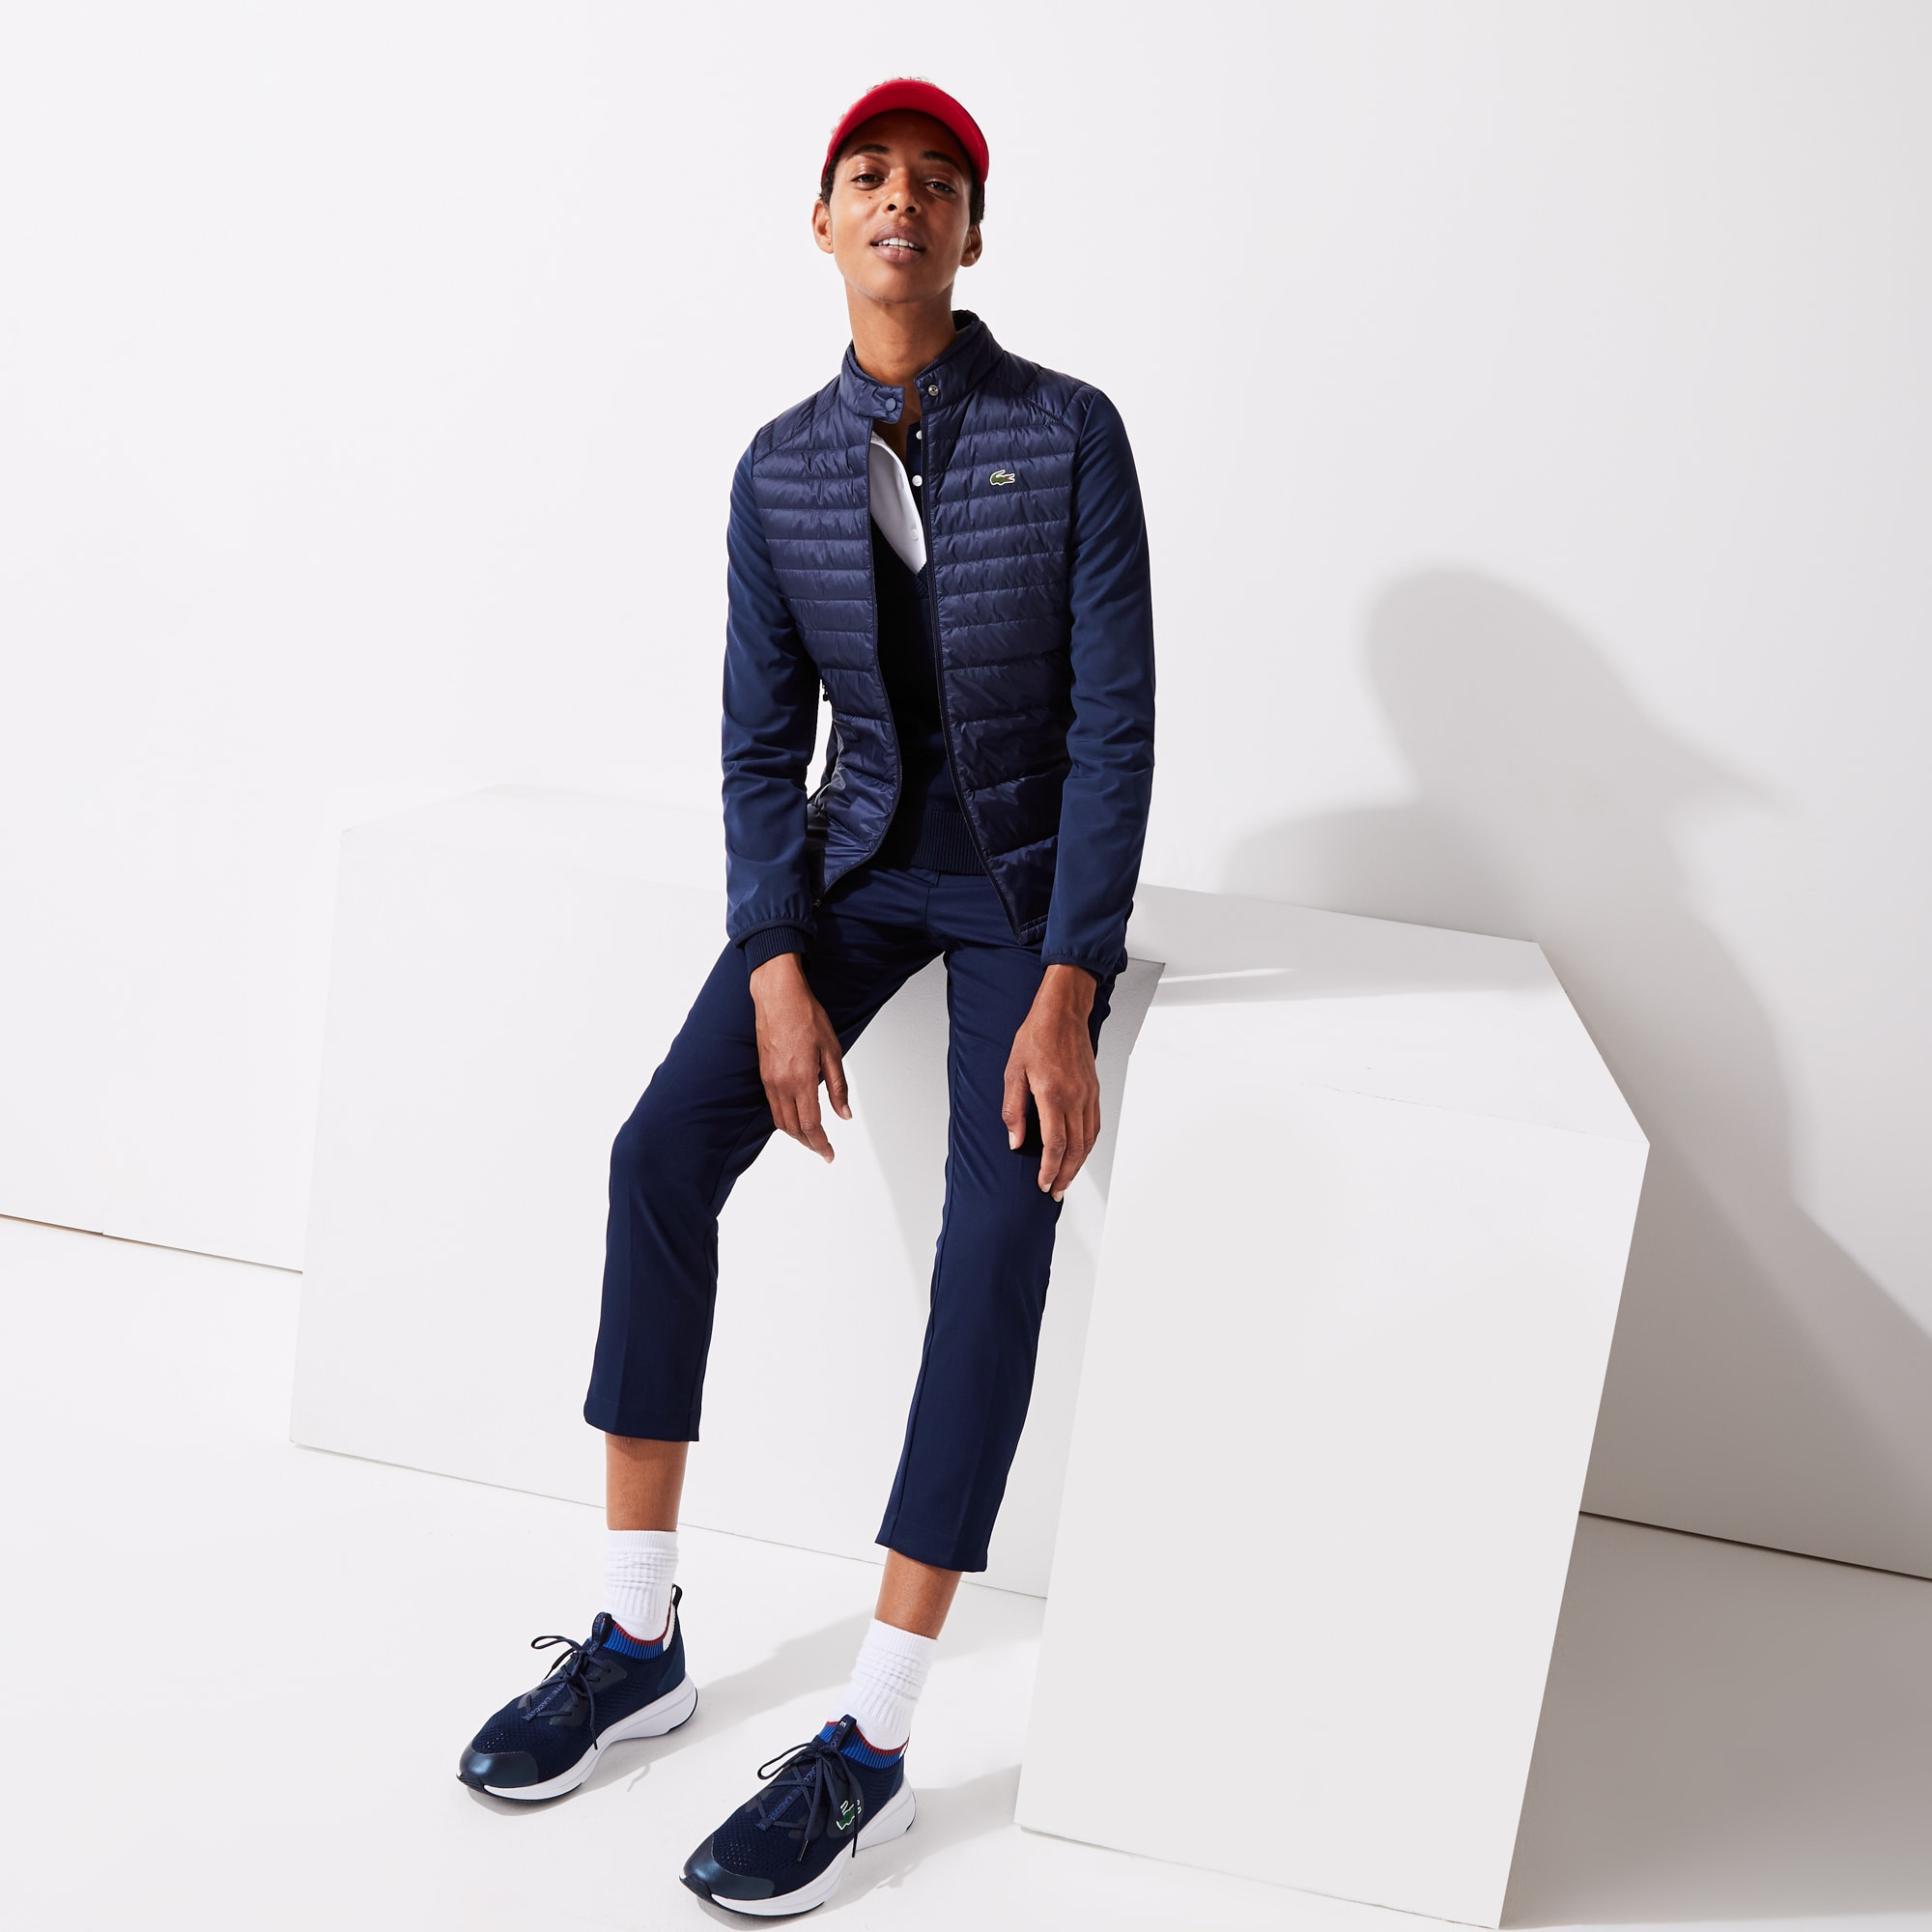 Lacoste Jackets Women's SPORT Quilted Technical Golf Jacket